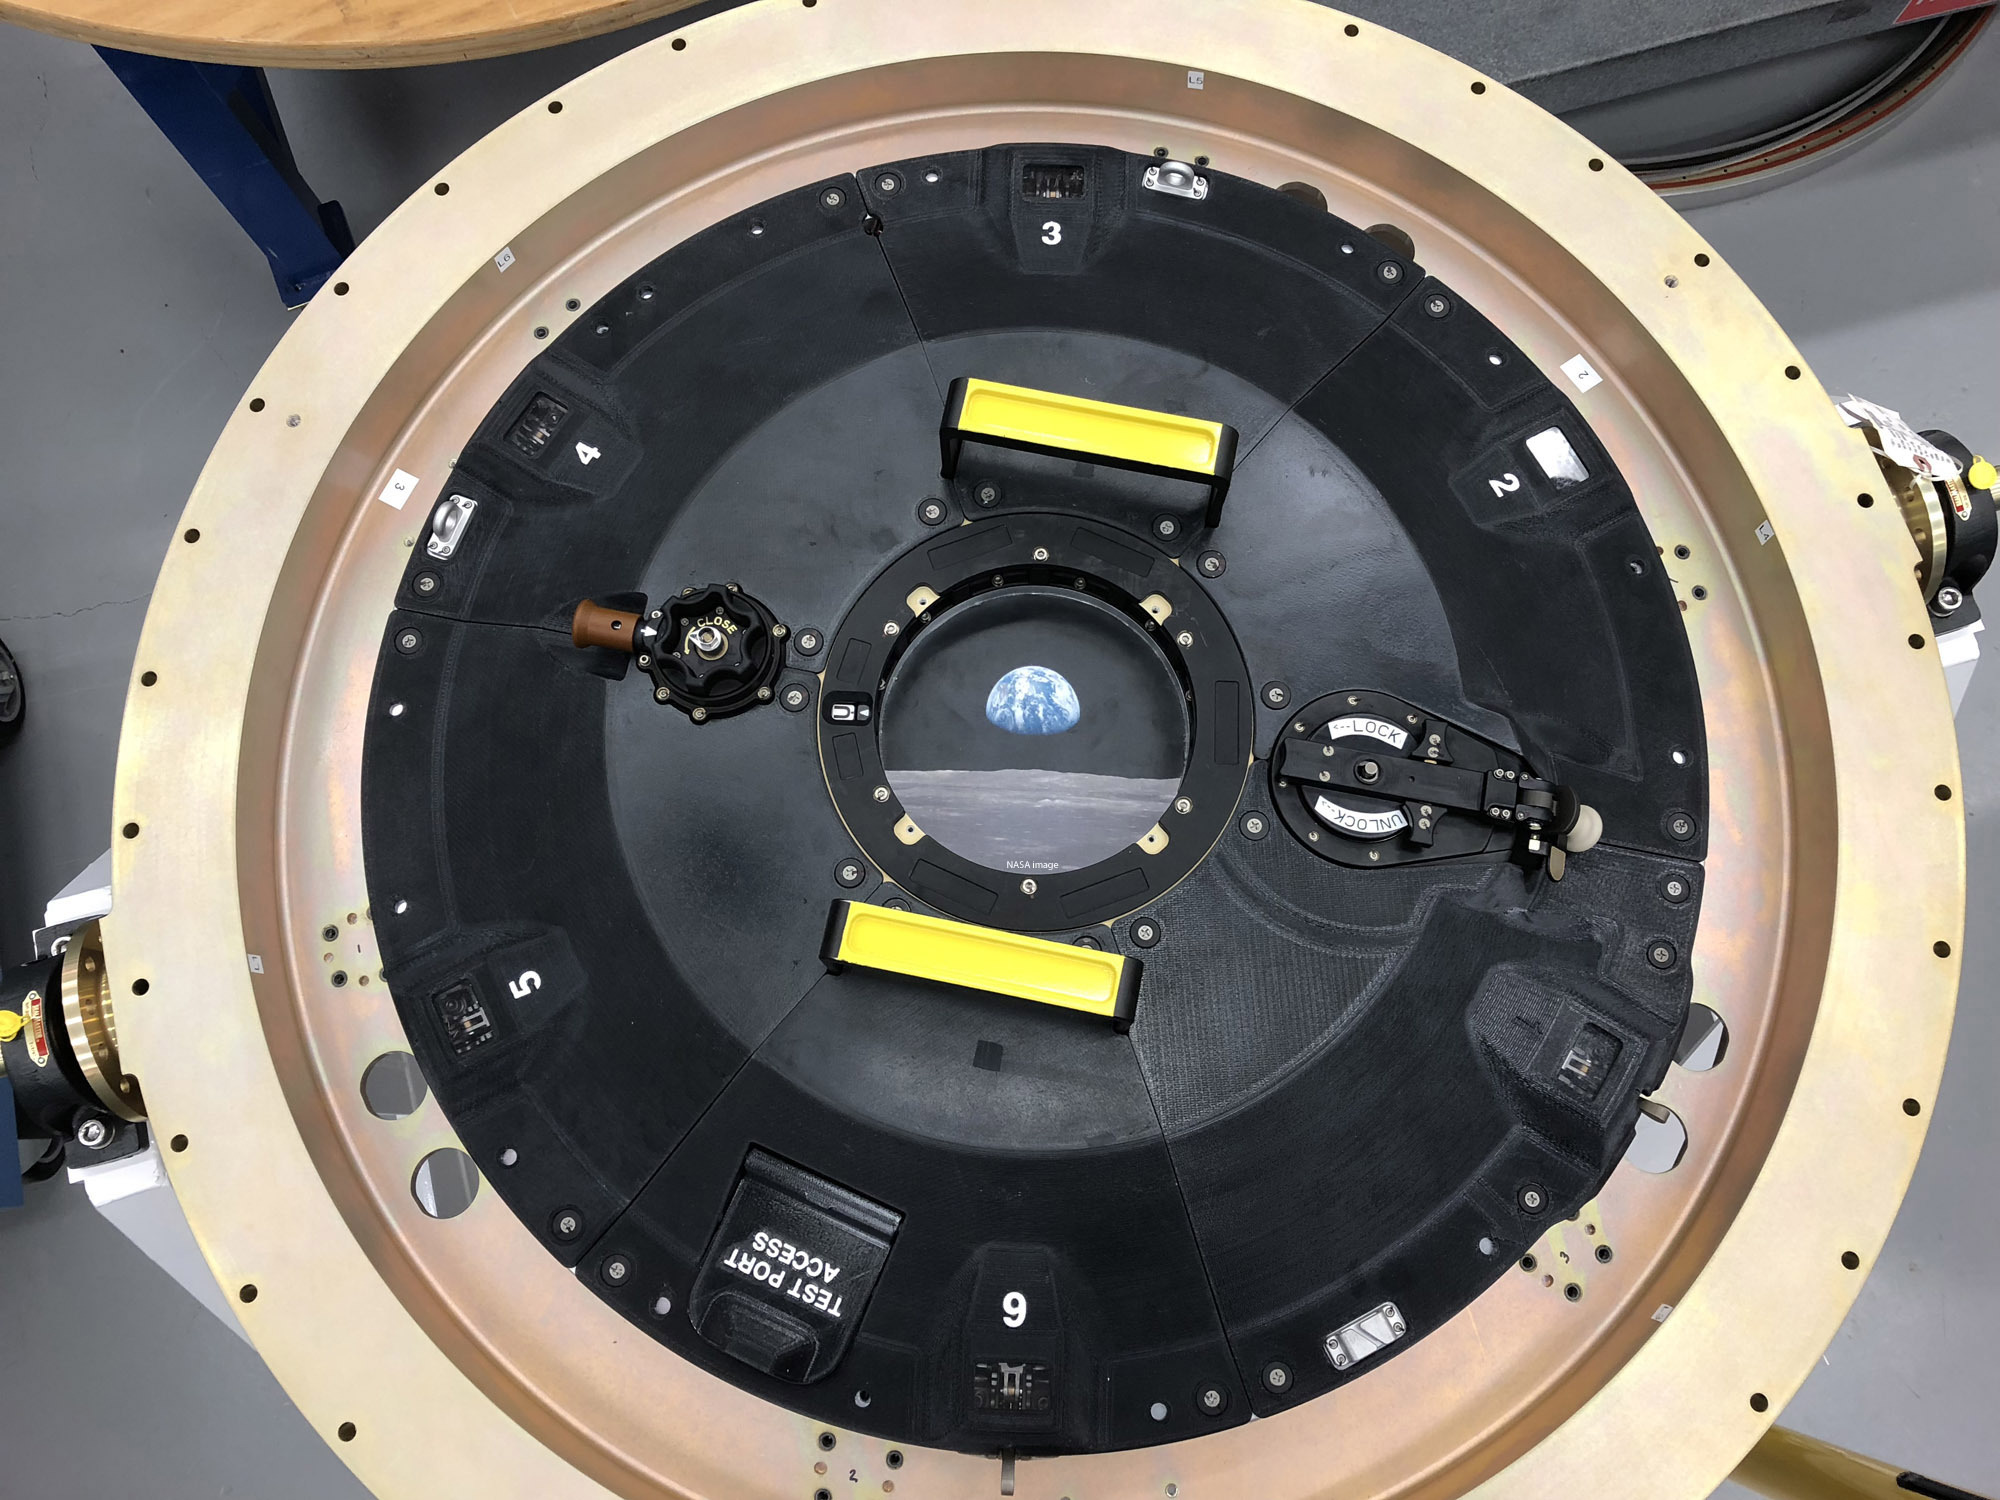 The Orion spacecraft leverages a variant of new Stratasys Antero 800NA to build an intricately-connected 3D printed docking hatch door